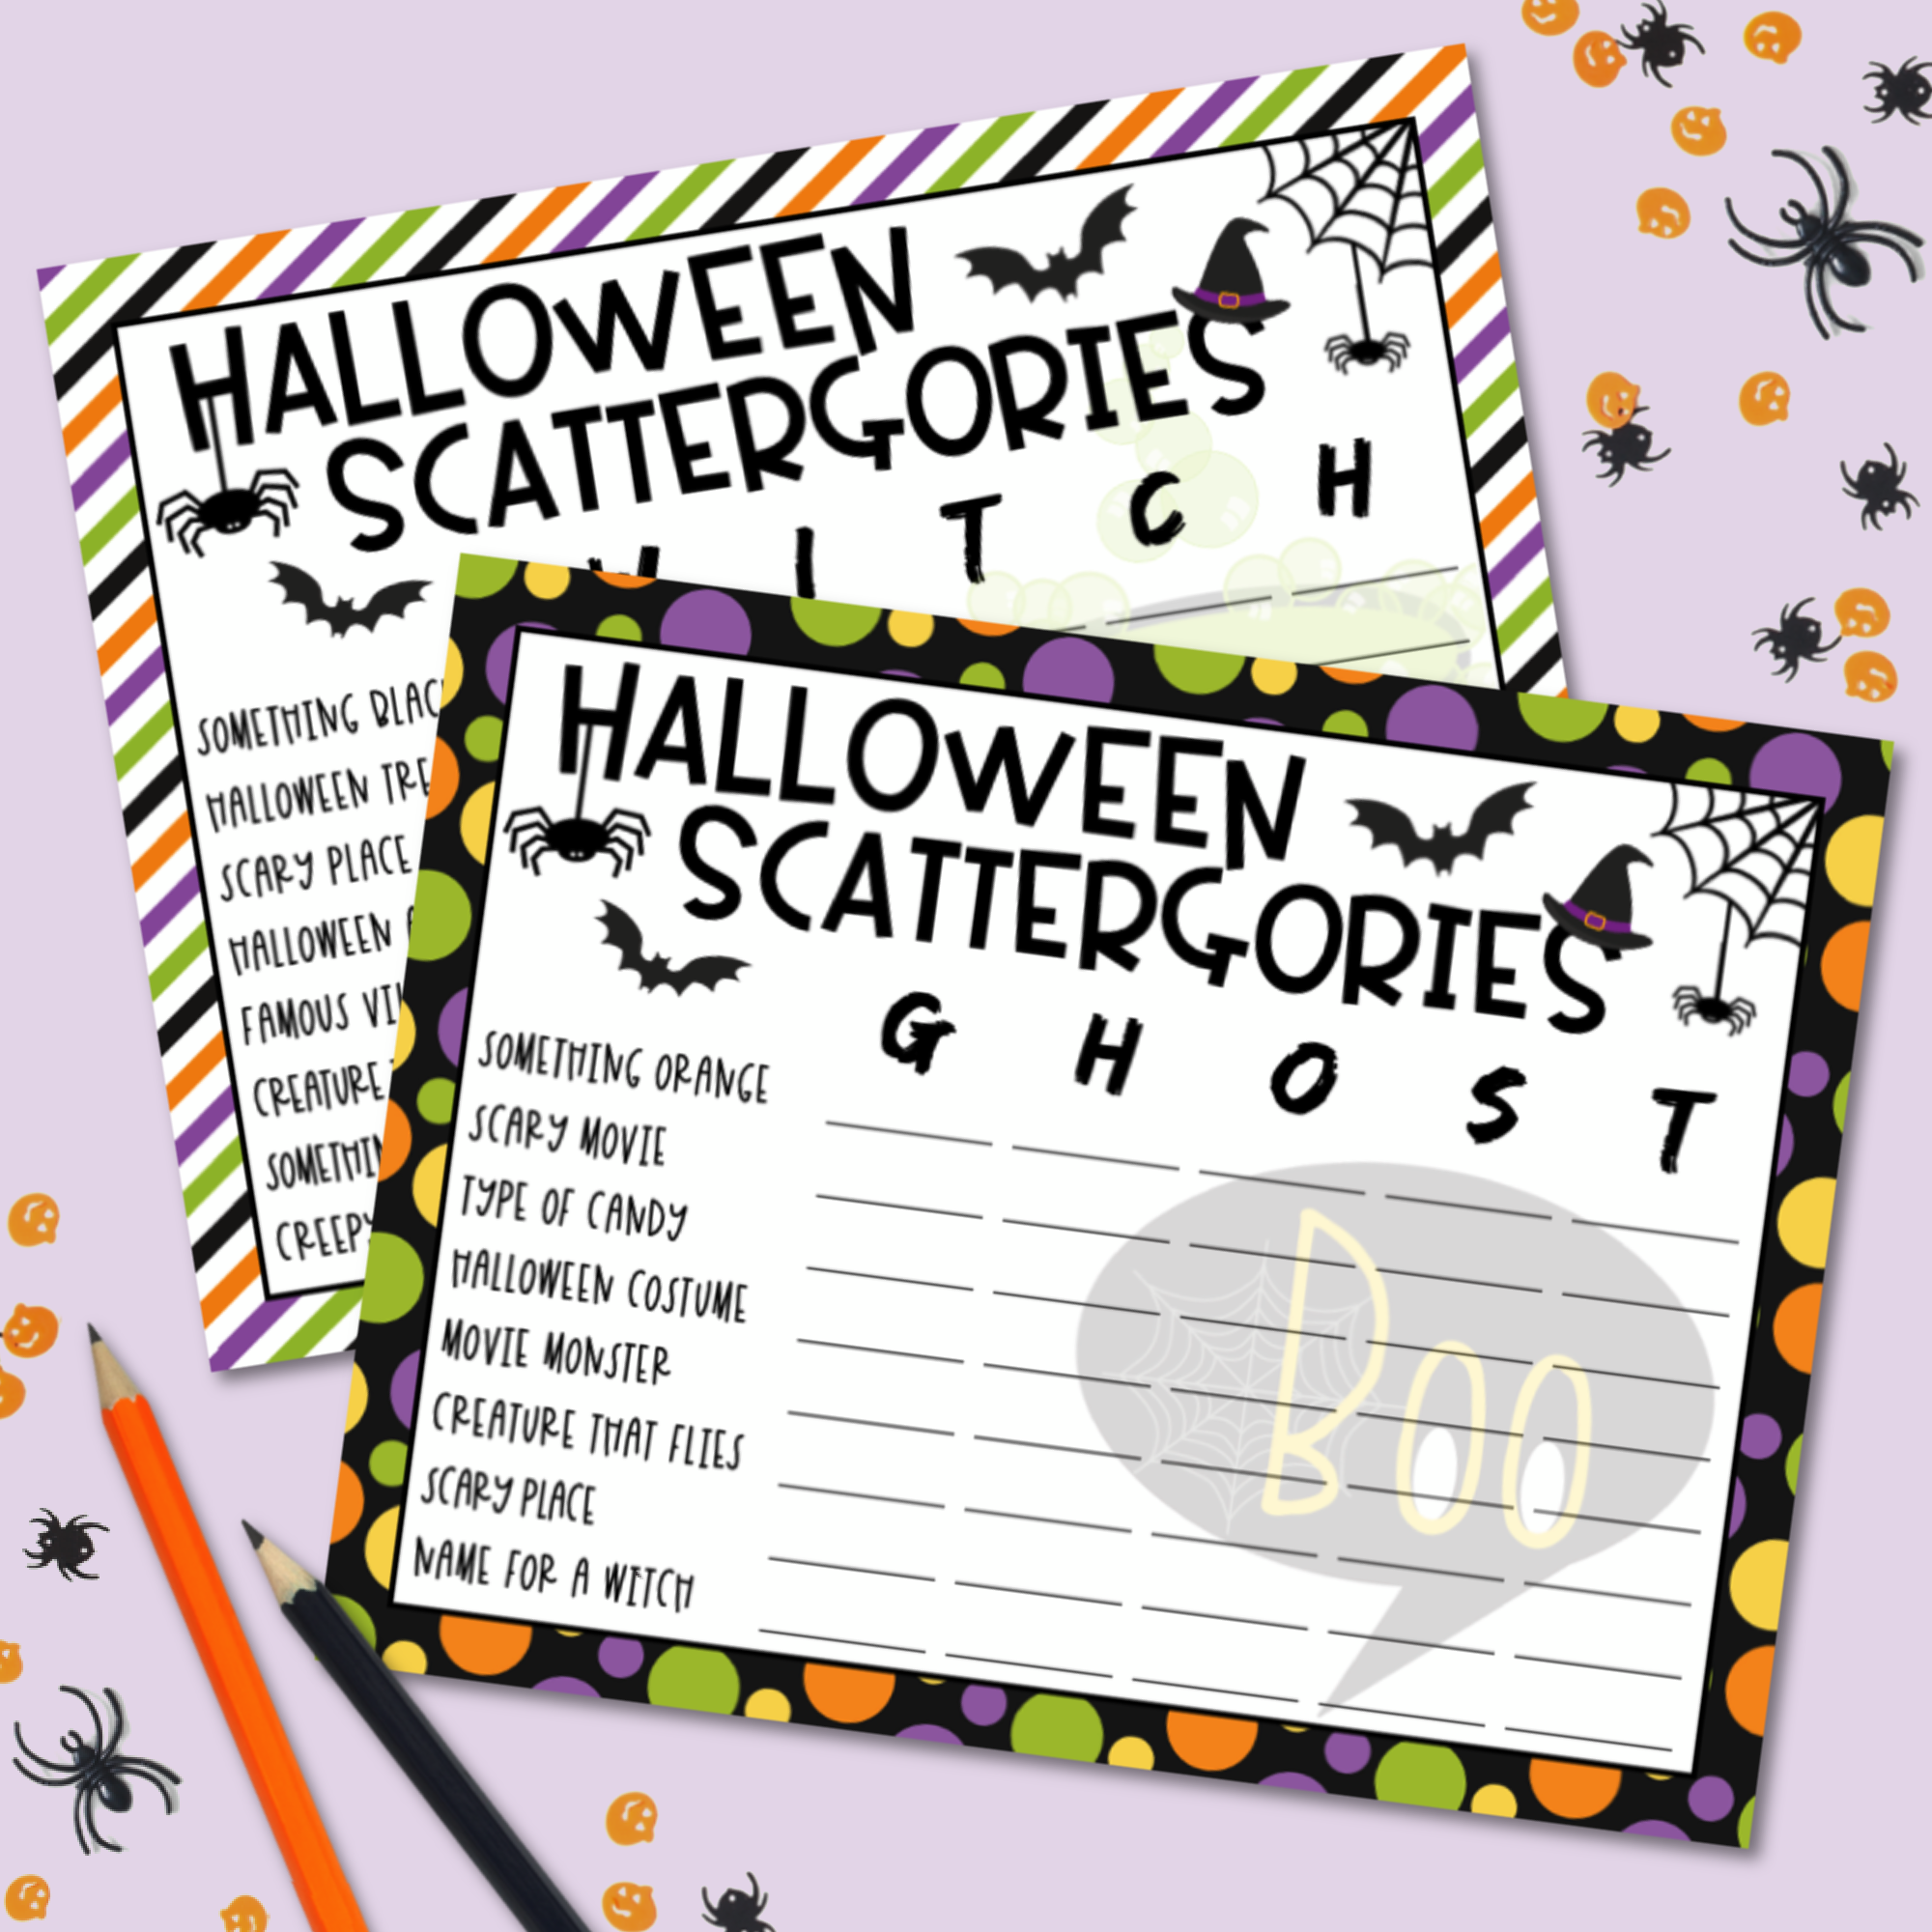 https://www.happygoluckyblog.com/wp-content/uploads/2020/09/Halloween-Scattergories-Free-Printable-Game.png